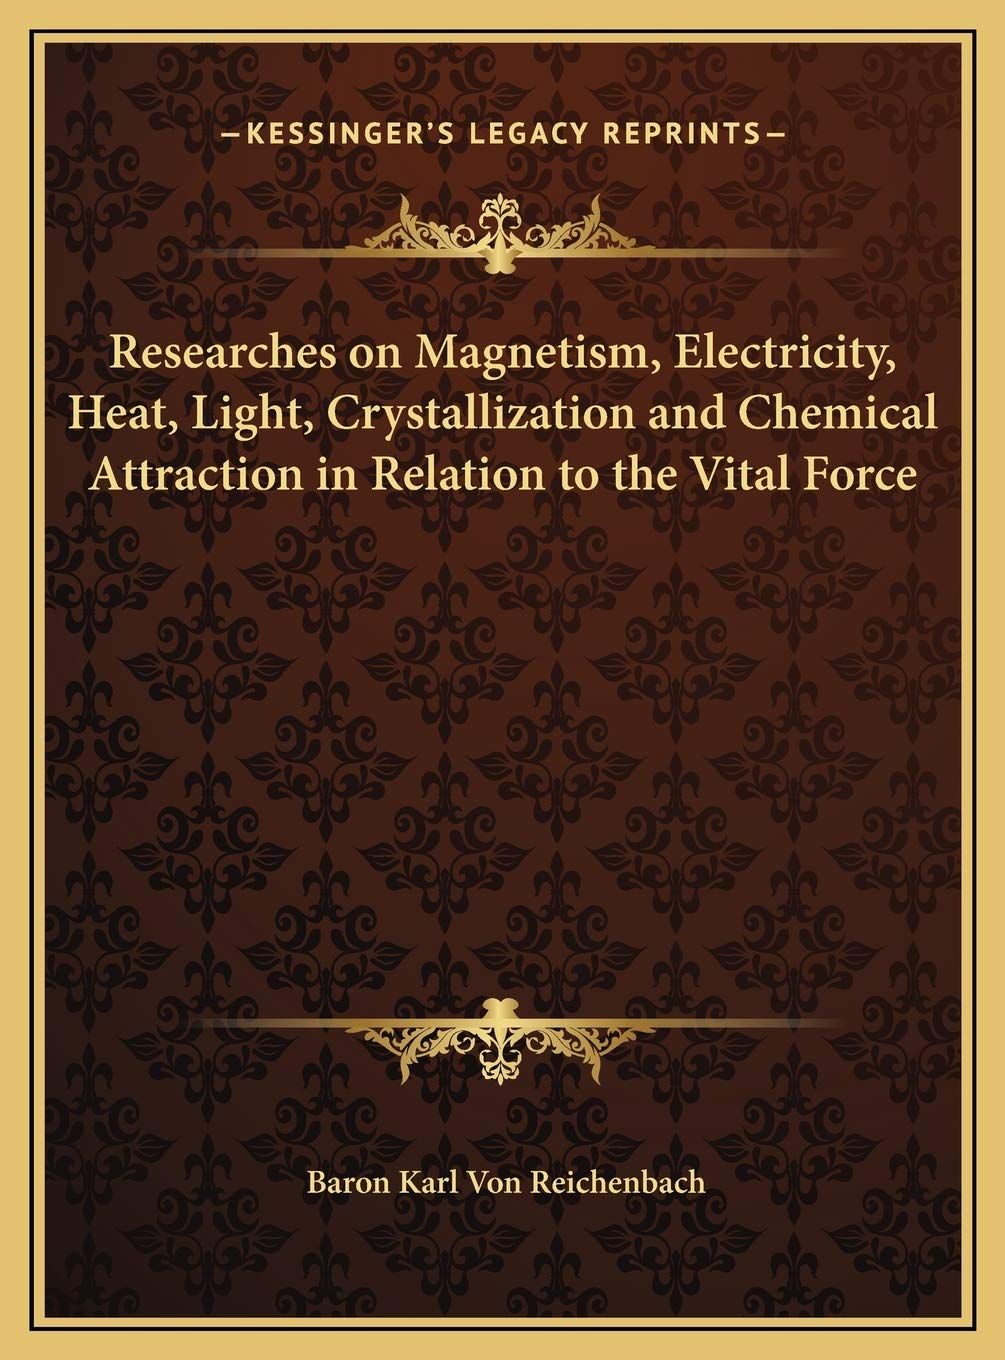 Researches on Magnetism, Electricity, Heat, Light, Crystallization and Chemical Attraction in Relation to the Vital Force